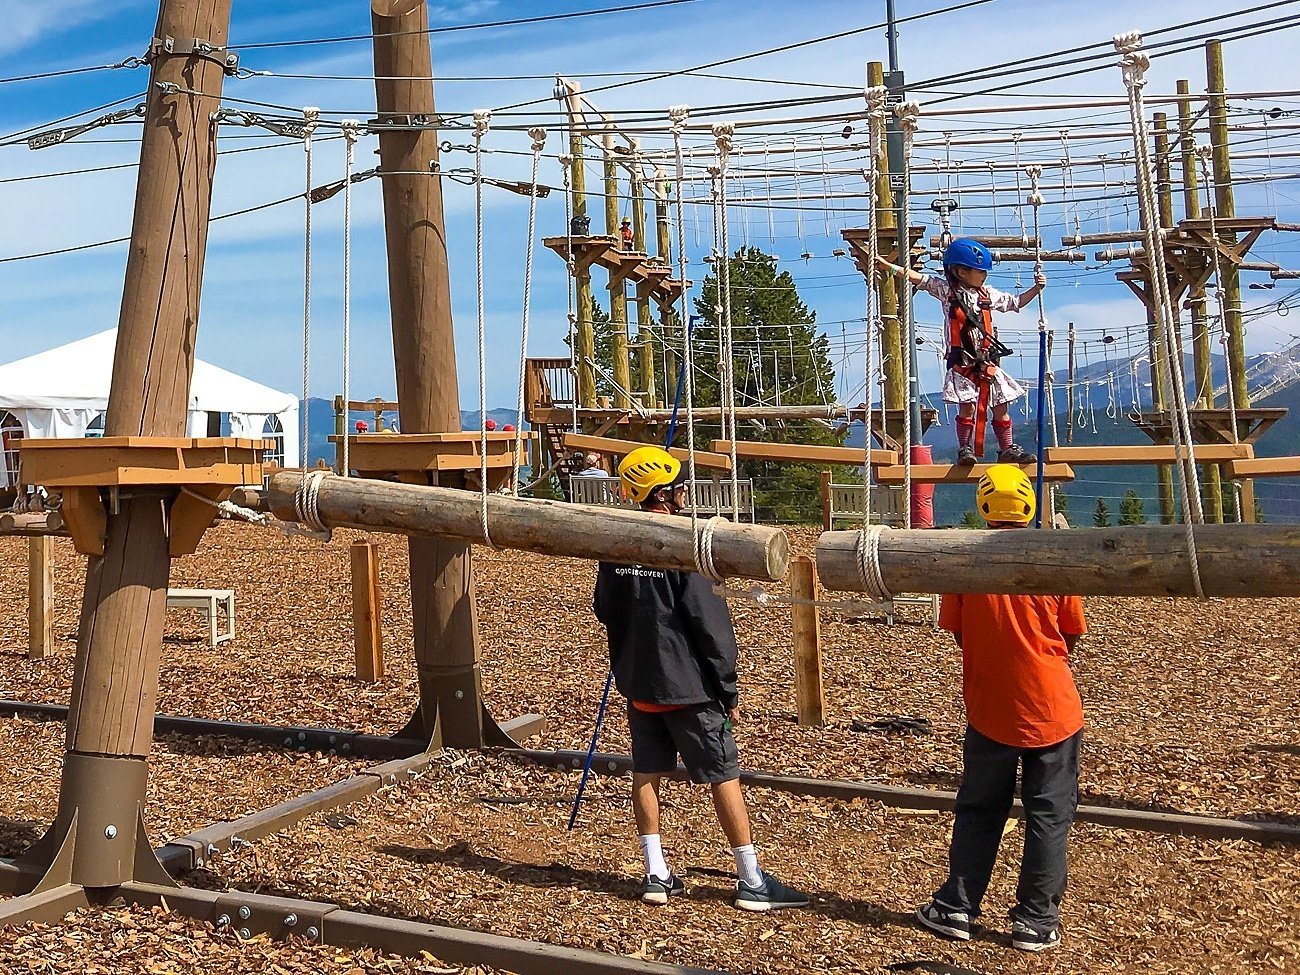 New Epic Discovery activities on Vail Mountain for kids include a pint-sized ropes course, tubing and zip lining.